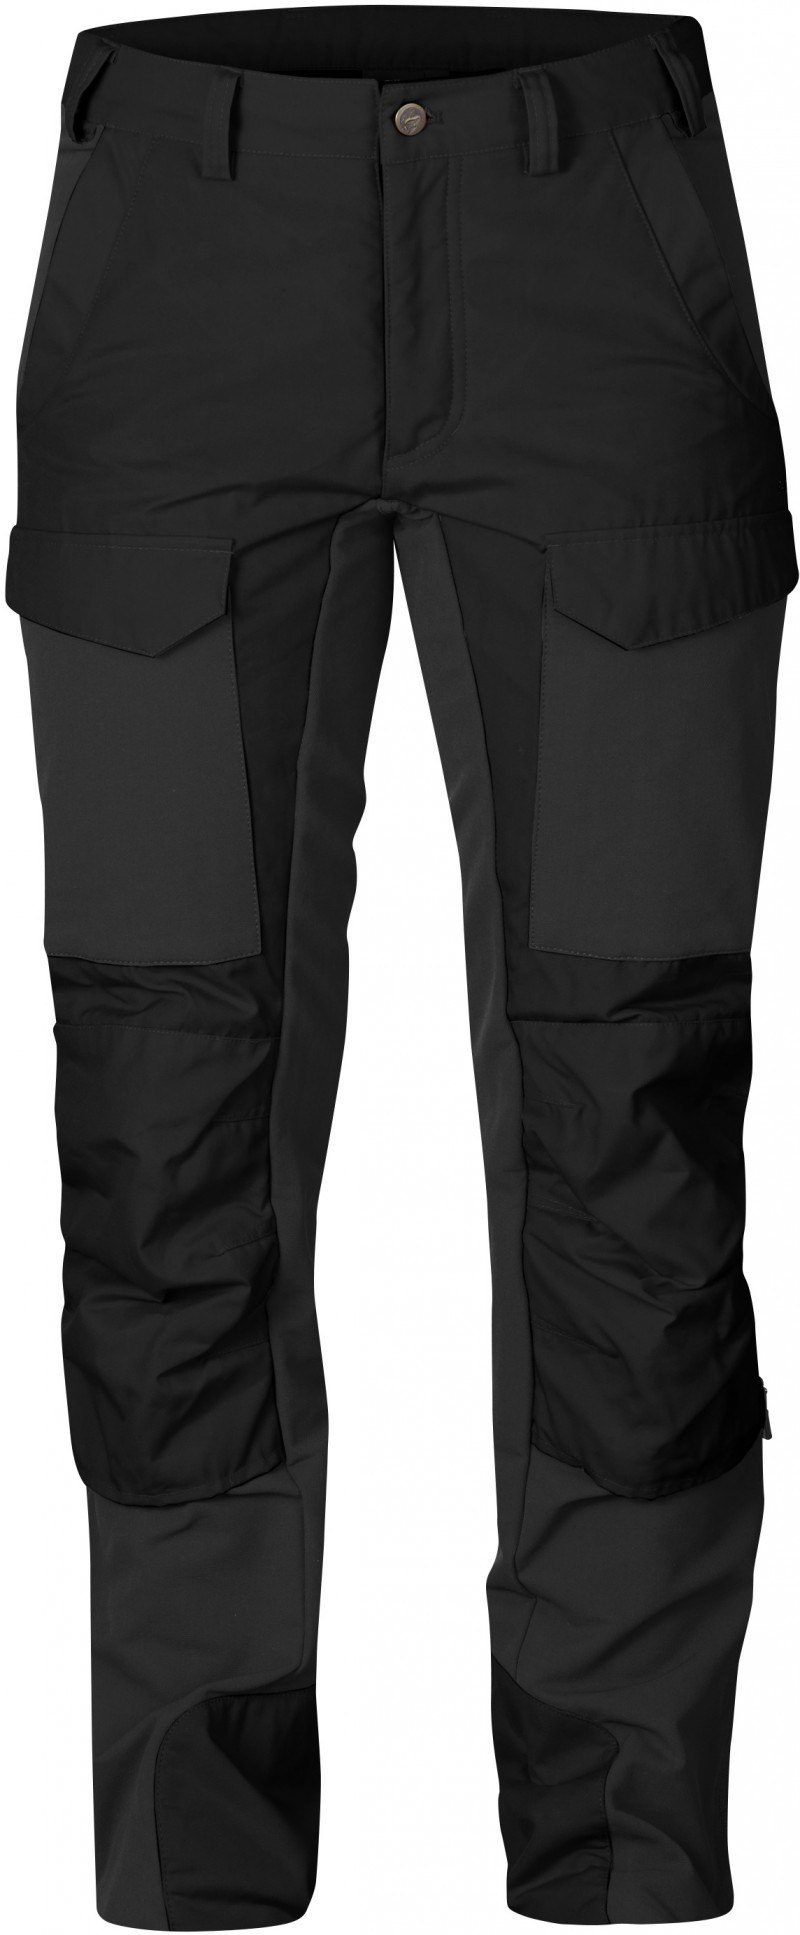 FjallRaven - Skare Trousers W. Black - Softshell Pants - 38